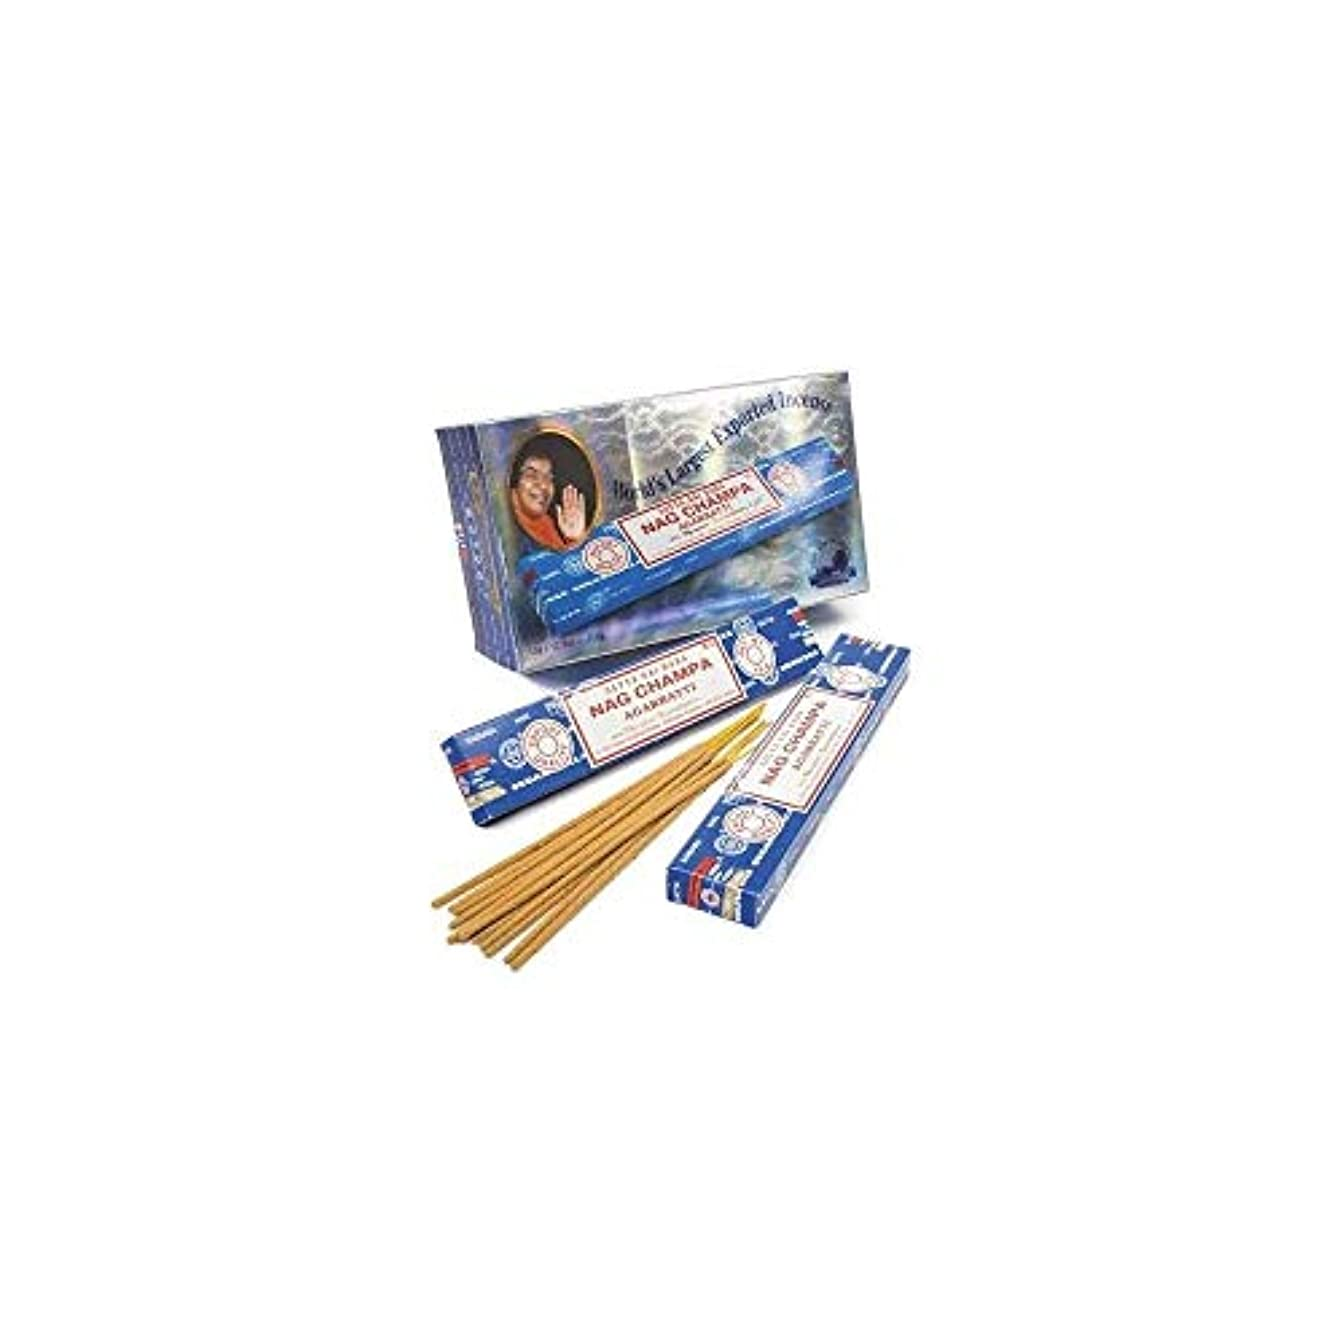 Box Of 12 Packs Of 15g Nag Champa Incense Sticks By Satya